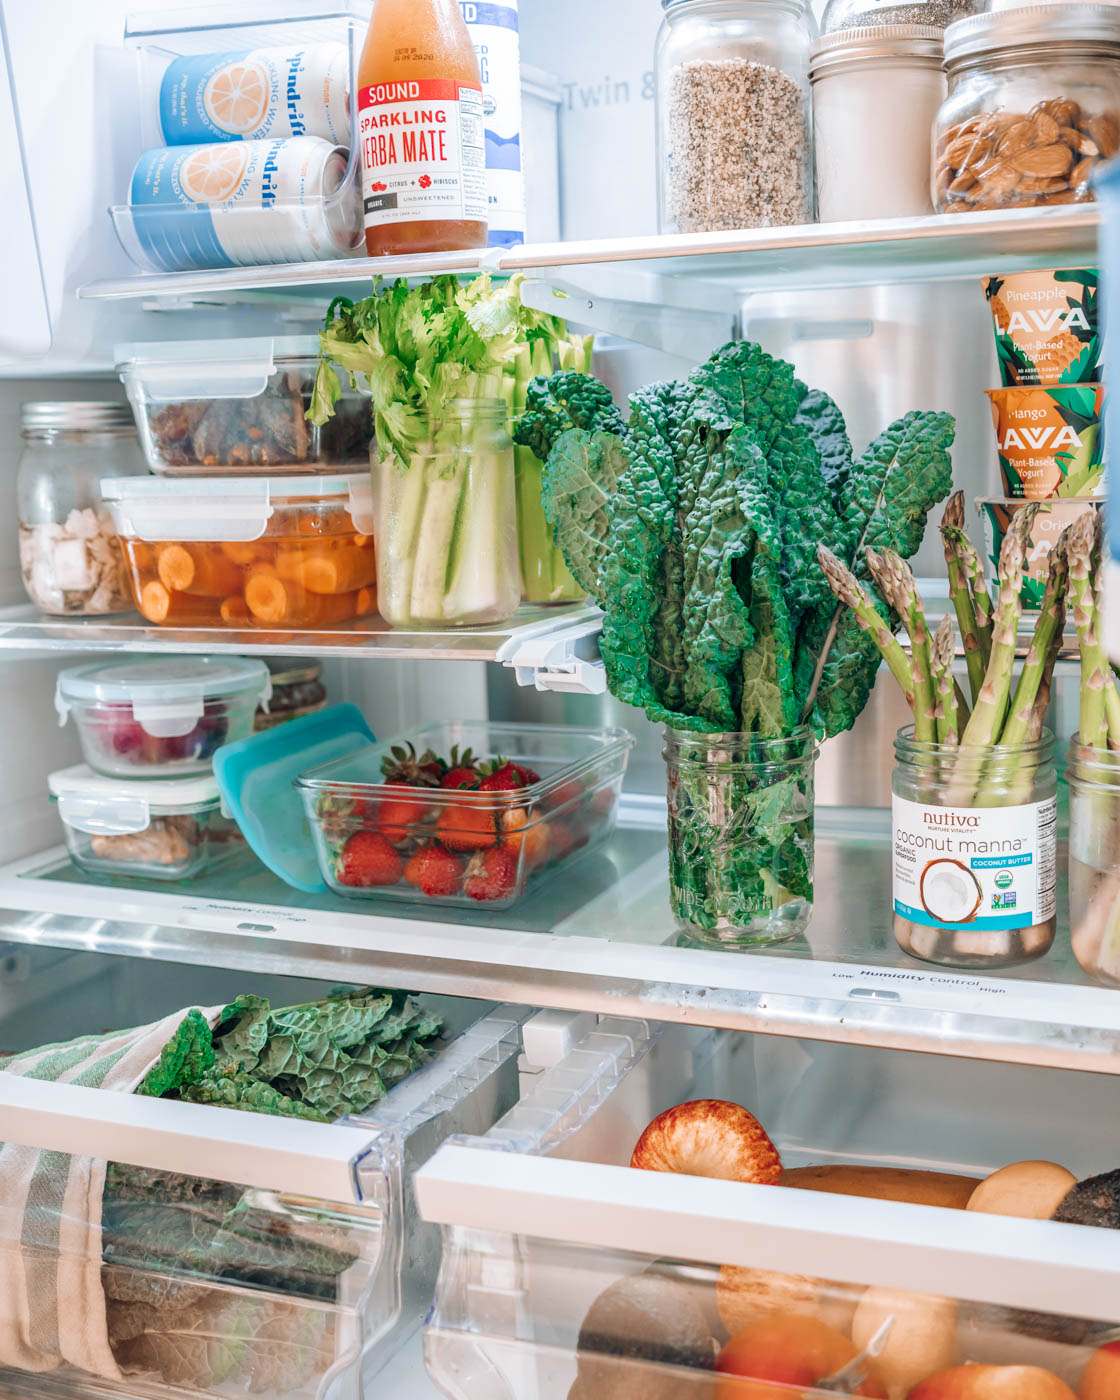 Fridge and pantry organization ideas to reduce food waste (and save money) | Simplify your kitchen with these eco-friendly ideas to keep your food fresh longer, reduce waste, and make your healthy food easy to access. In this post, I share all the tips I'm using to set up my minimalist kitchen in our new home. | Om & The City #omandthecity #fridgeorganization #pantryorganization #wastefreeliving #minimalisthome #minimalistkitchen